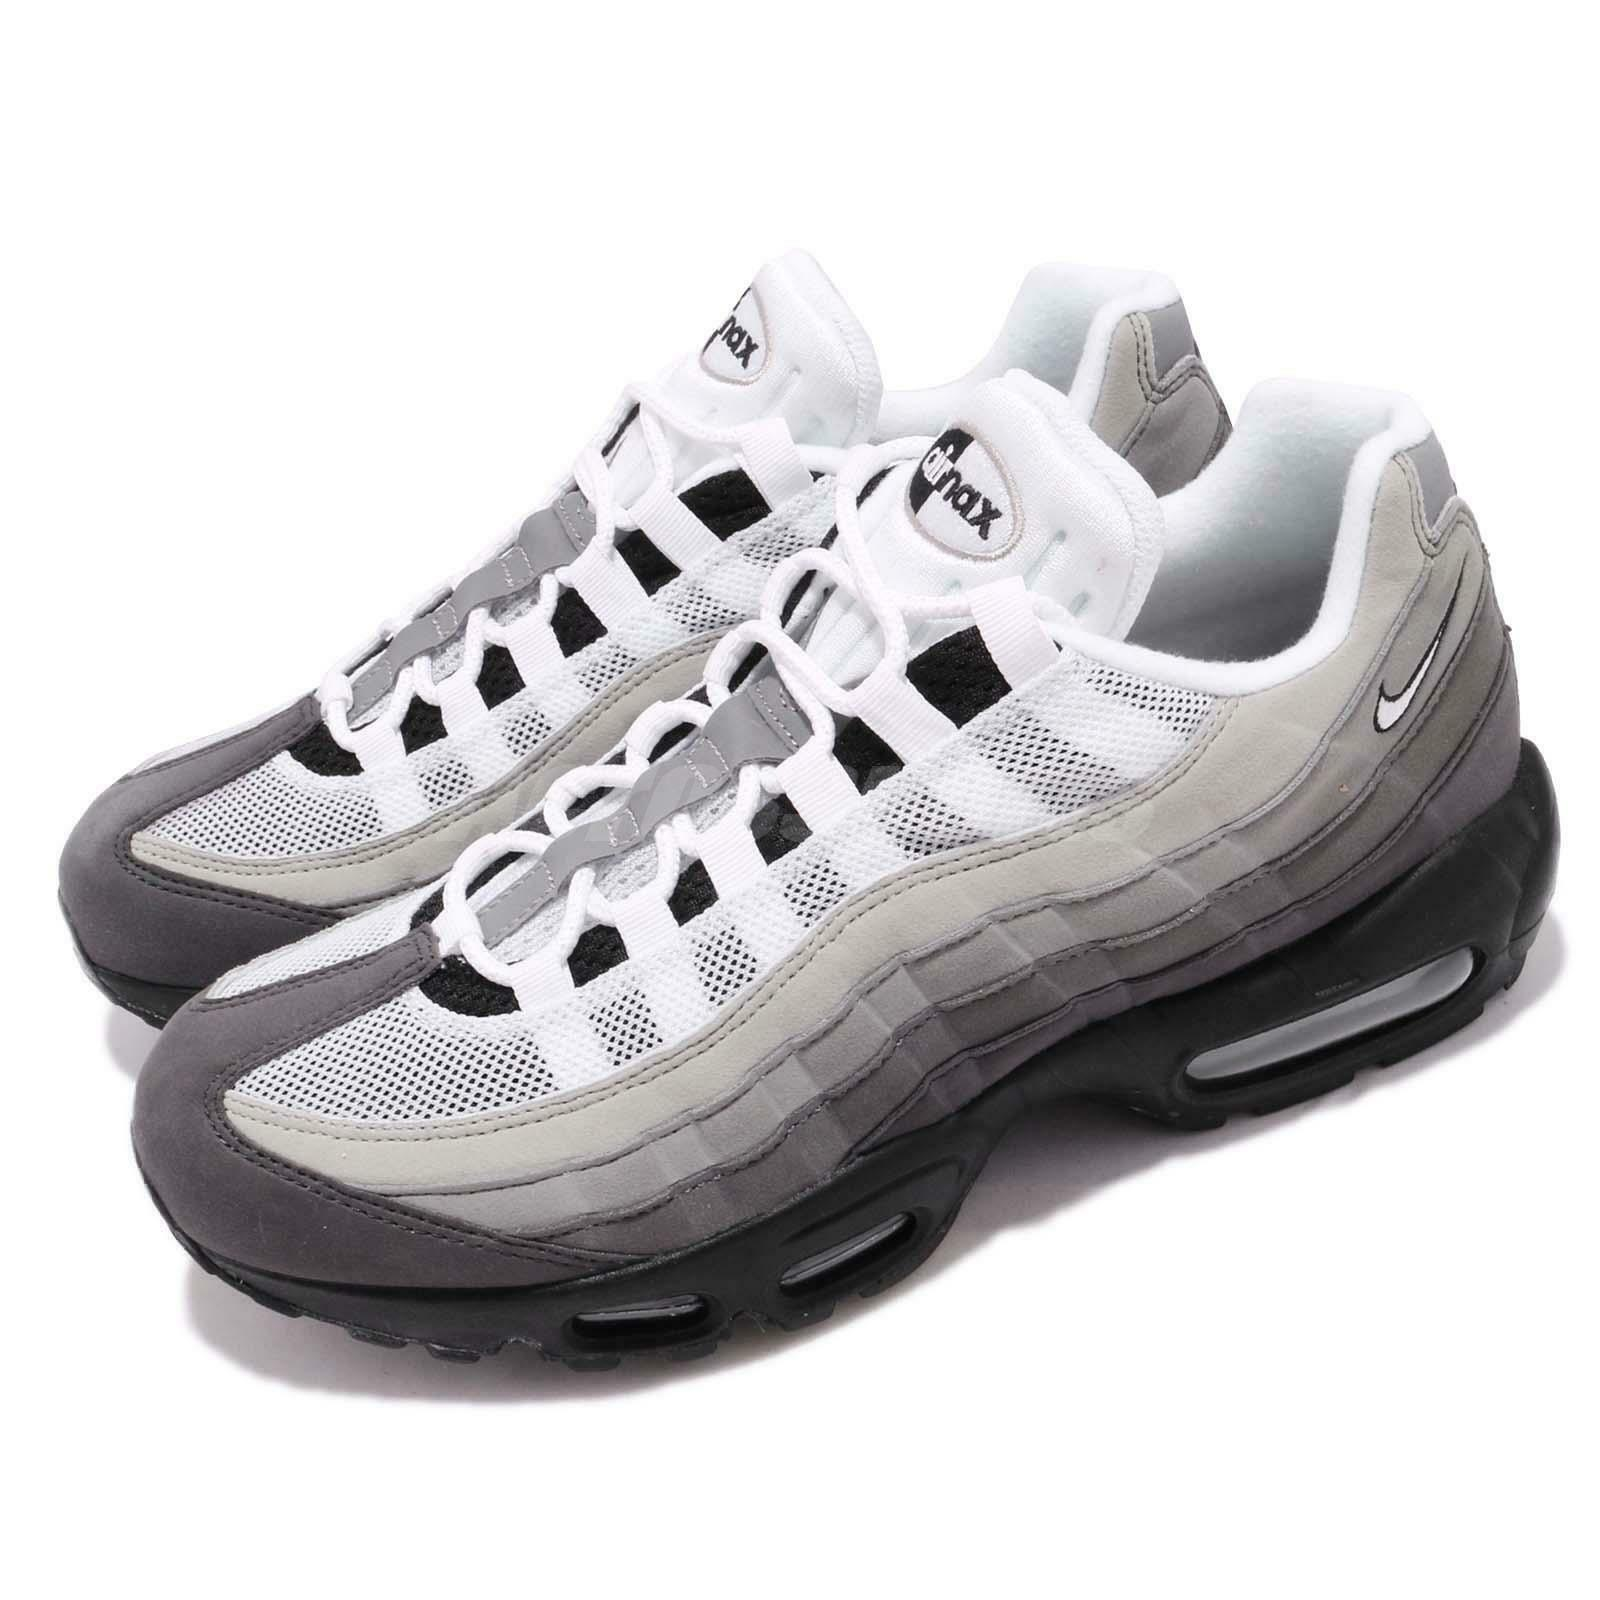 Nike Air Max 95 OG White Grey Gradient Men Running Lifestyle Shoes AT2865 003